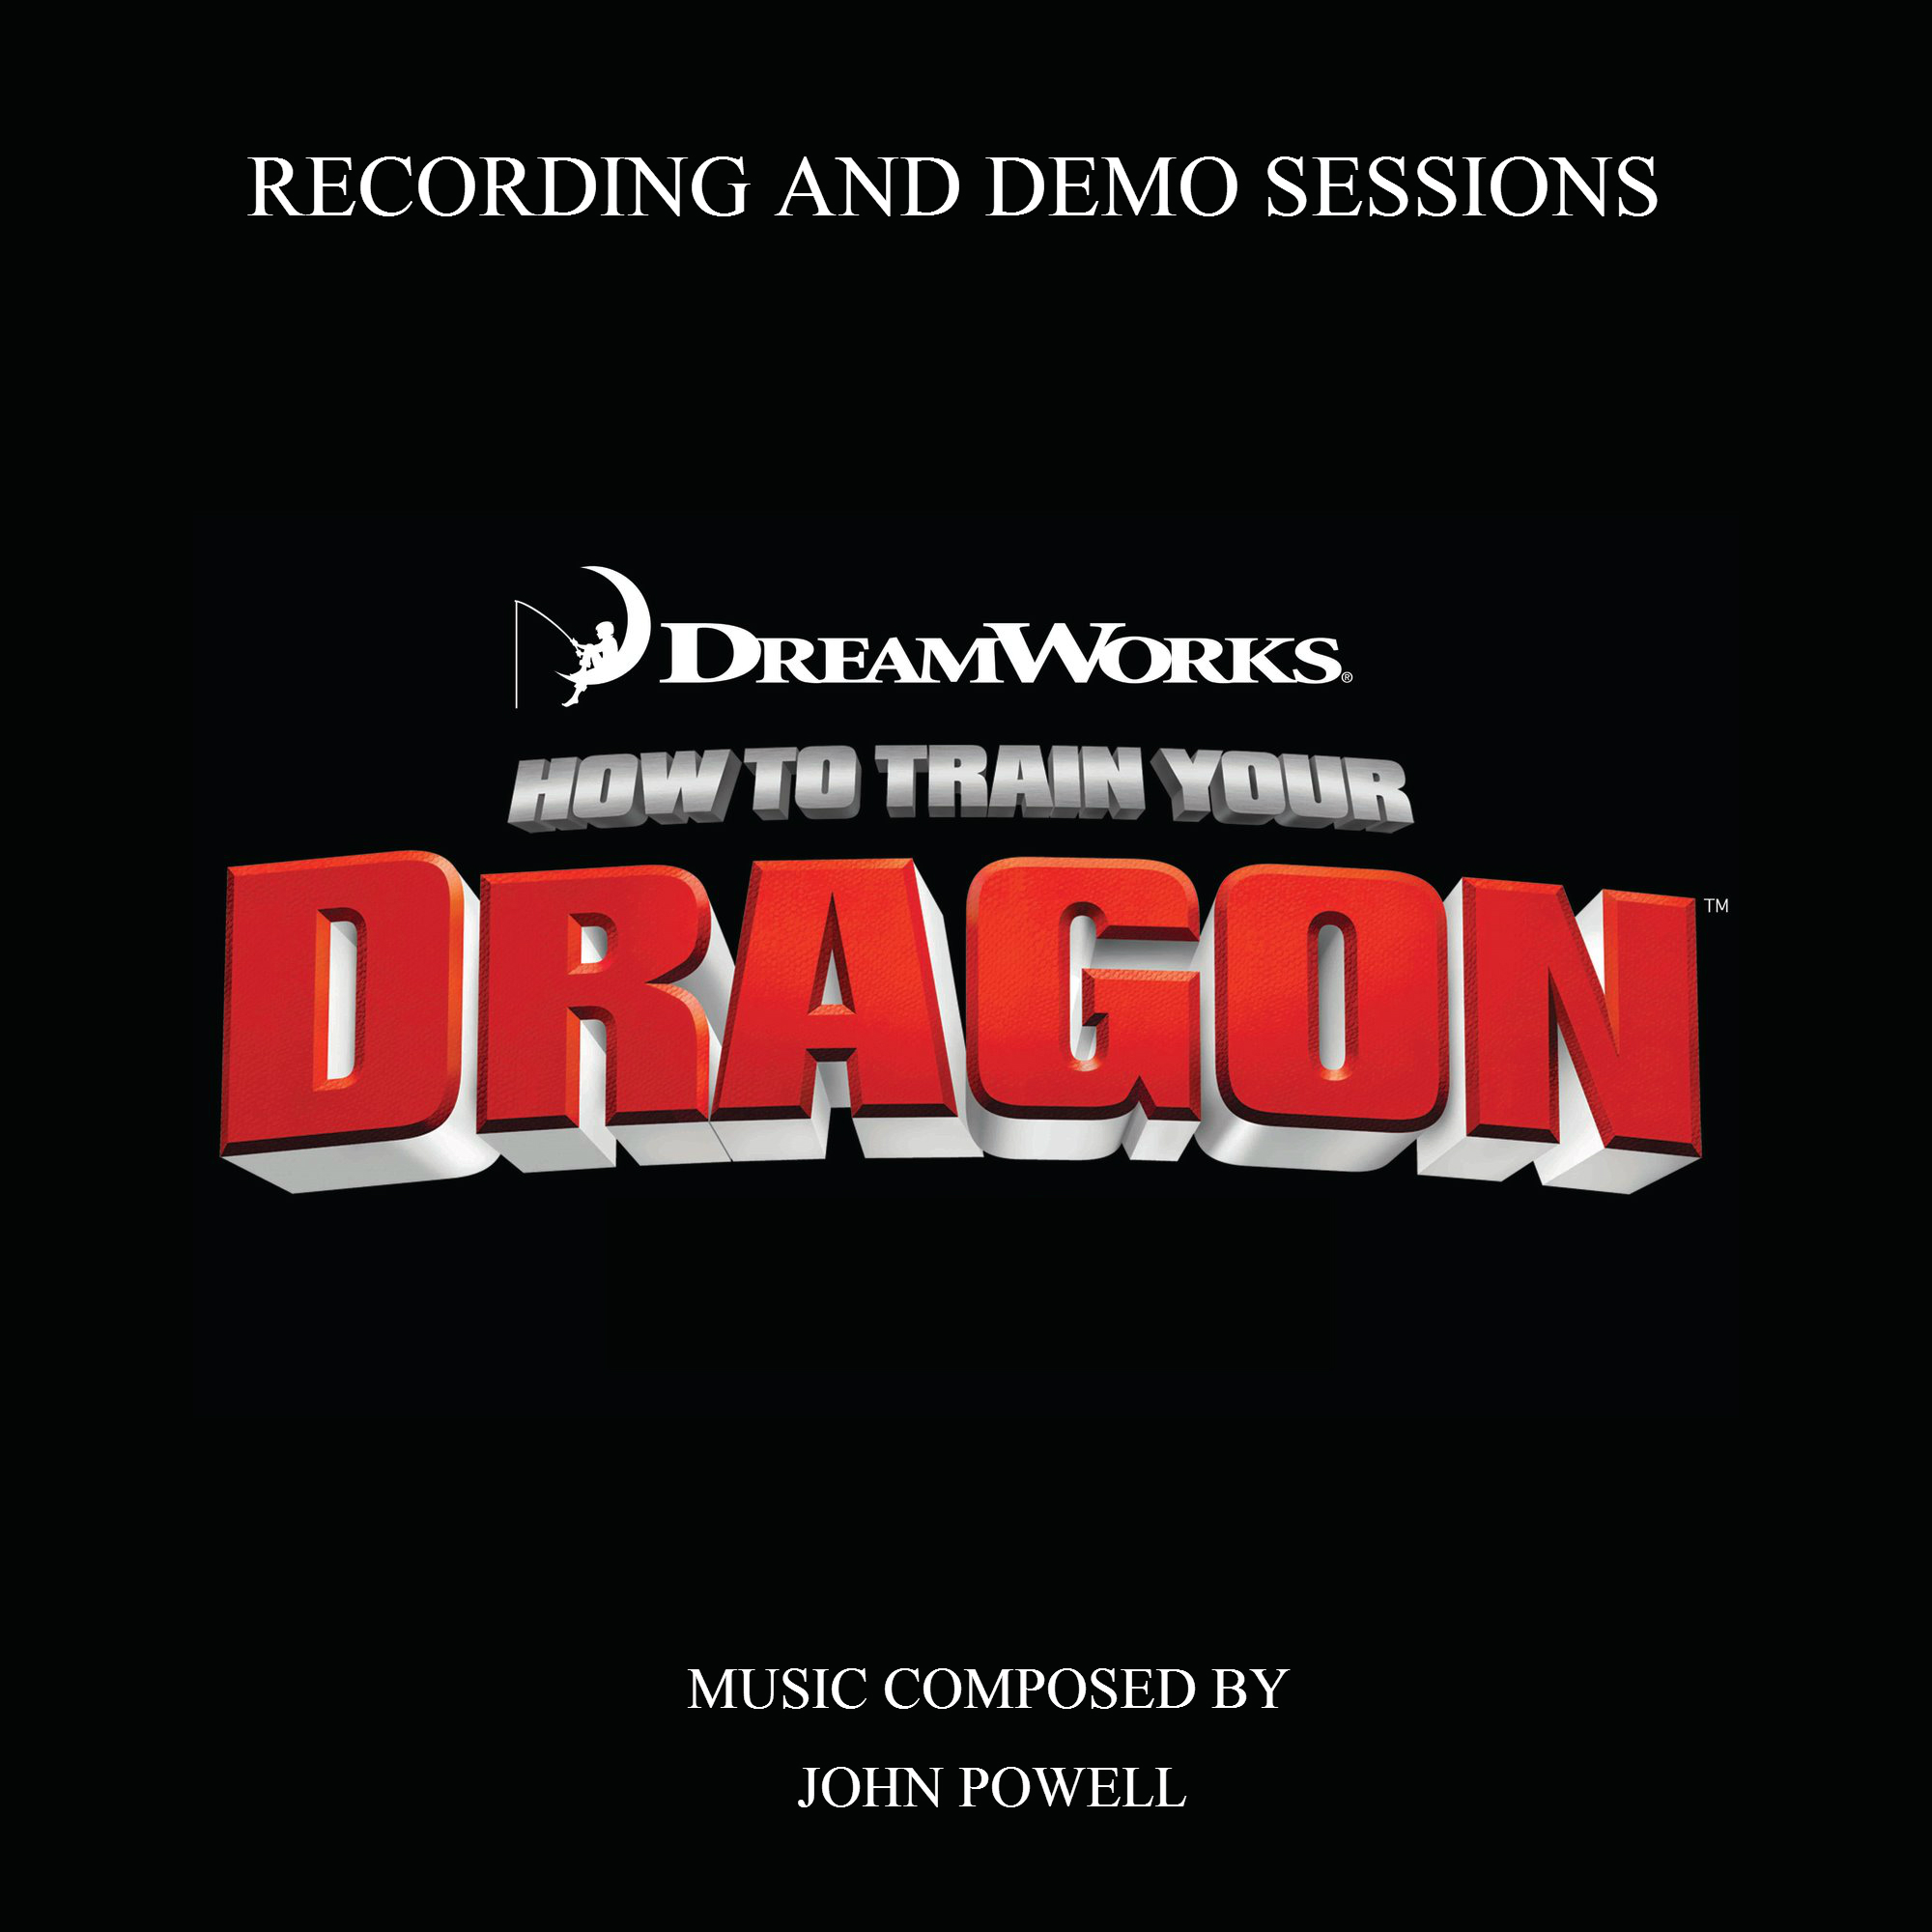 How to train your dragon images how to train your dragon soundtrack how to train your dragon images how to train your dragon soundtrack cd covers hd wallpaper and background photos ccuart Gallery